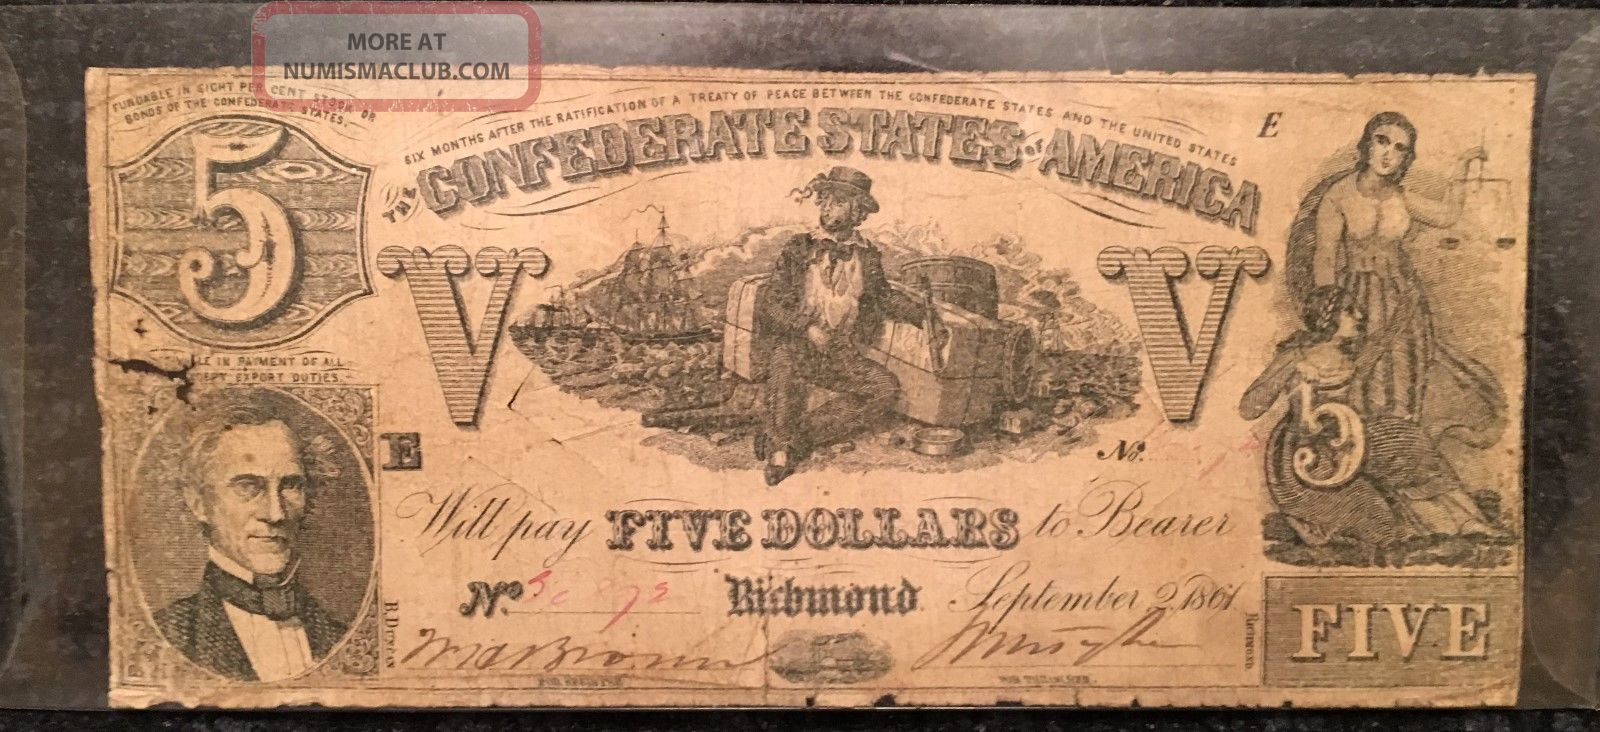 1861 Confederate States Of America $5 Five Dollar Bill Civil War Currency Note Paper Money: US photo